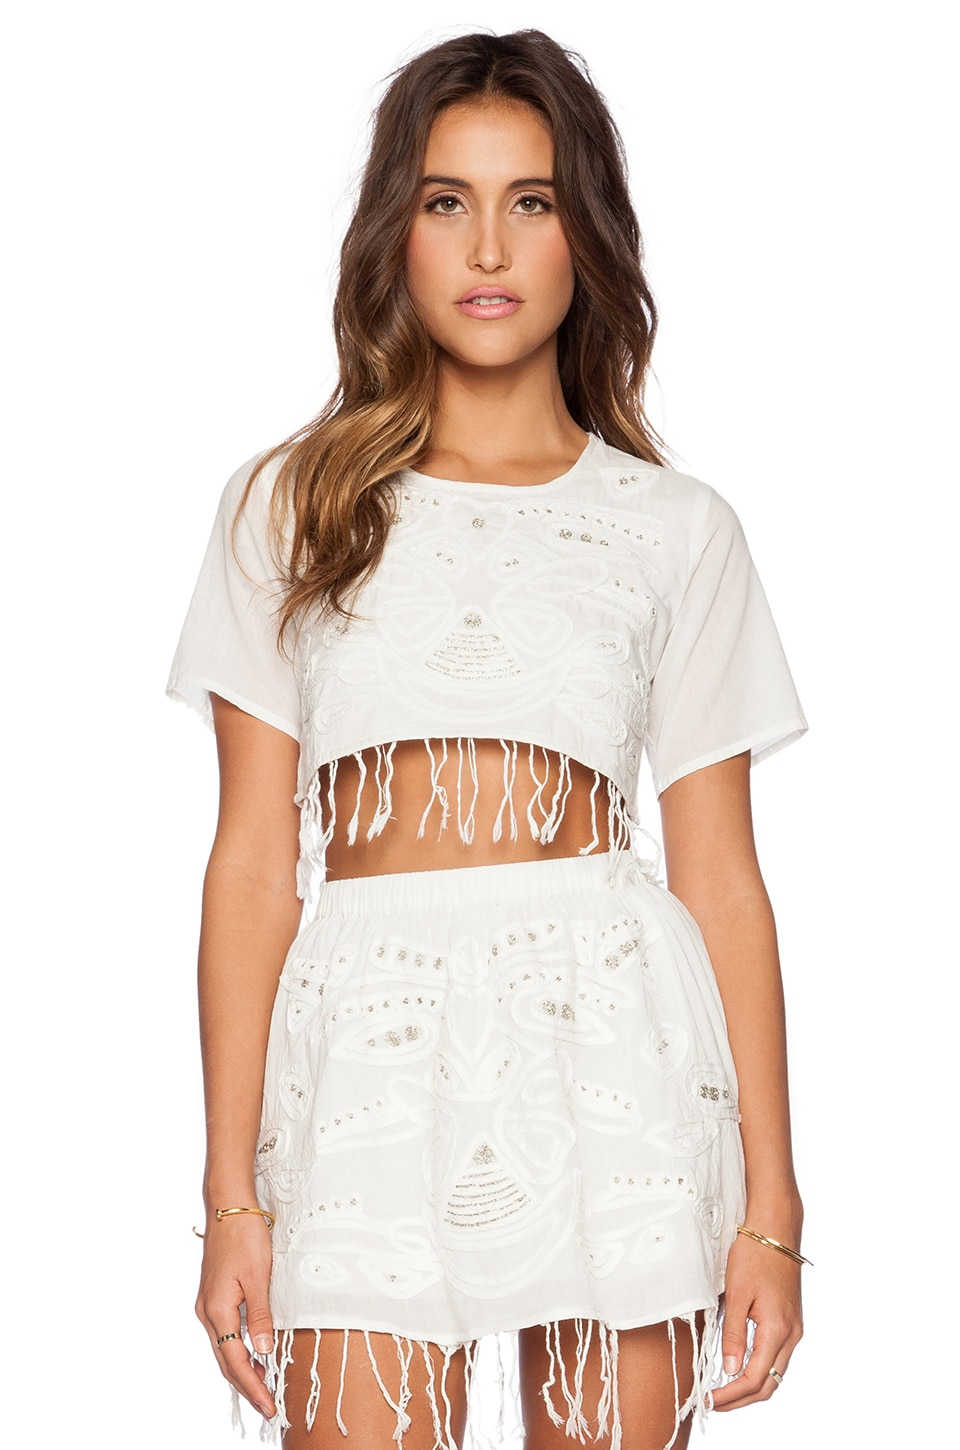 Raga Nomad Crop Top in Eggshell